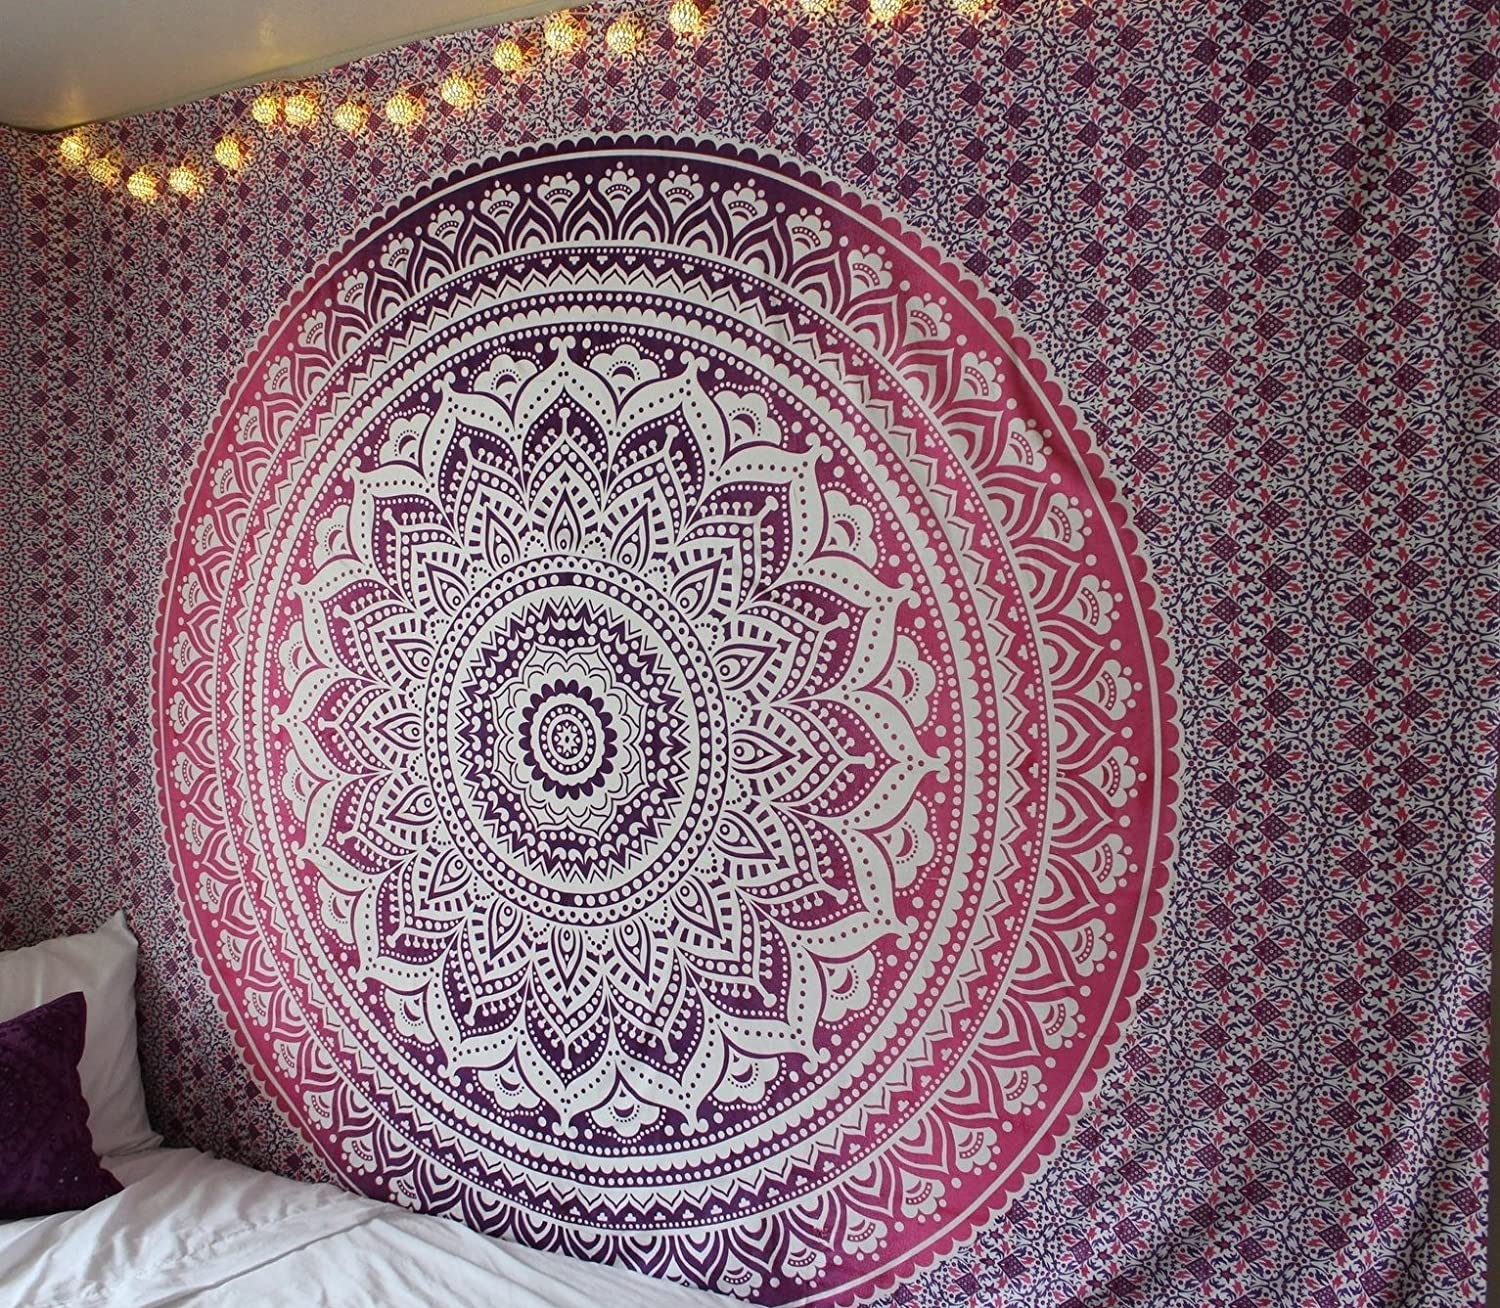 """Large """"Pink Ombre Tapestry"""" Pink Mandala Tapestry, Queen Ombre Bedding Psychedelic Indian Mandala Big Hippie Wall Hanging Bohemian Bedspread Dorm Decor Beach Throw by RSG Venture"""